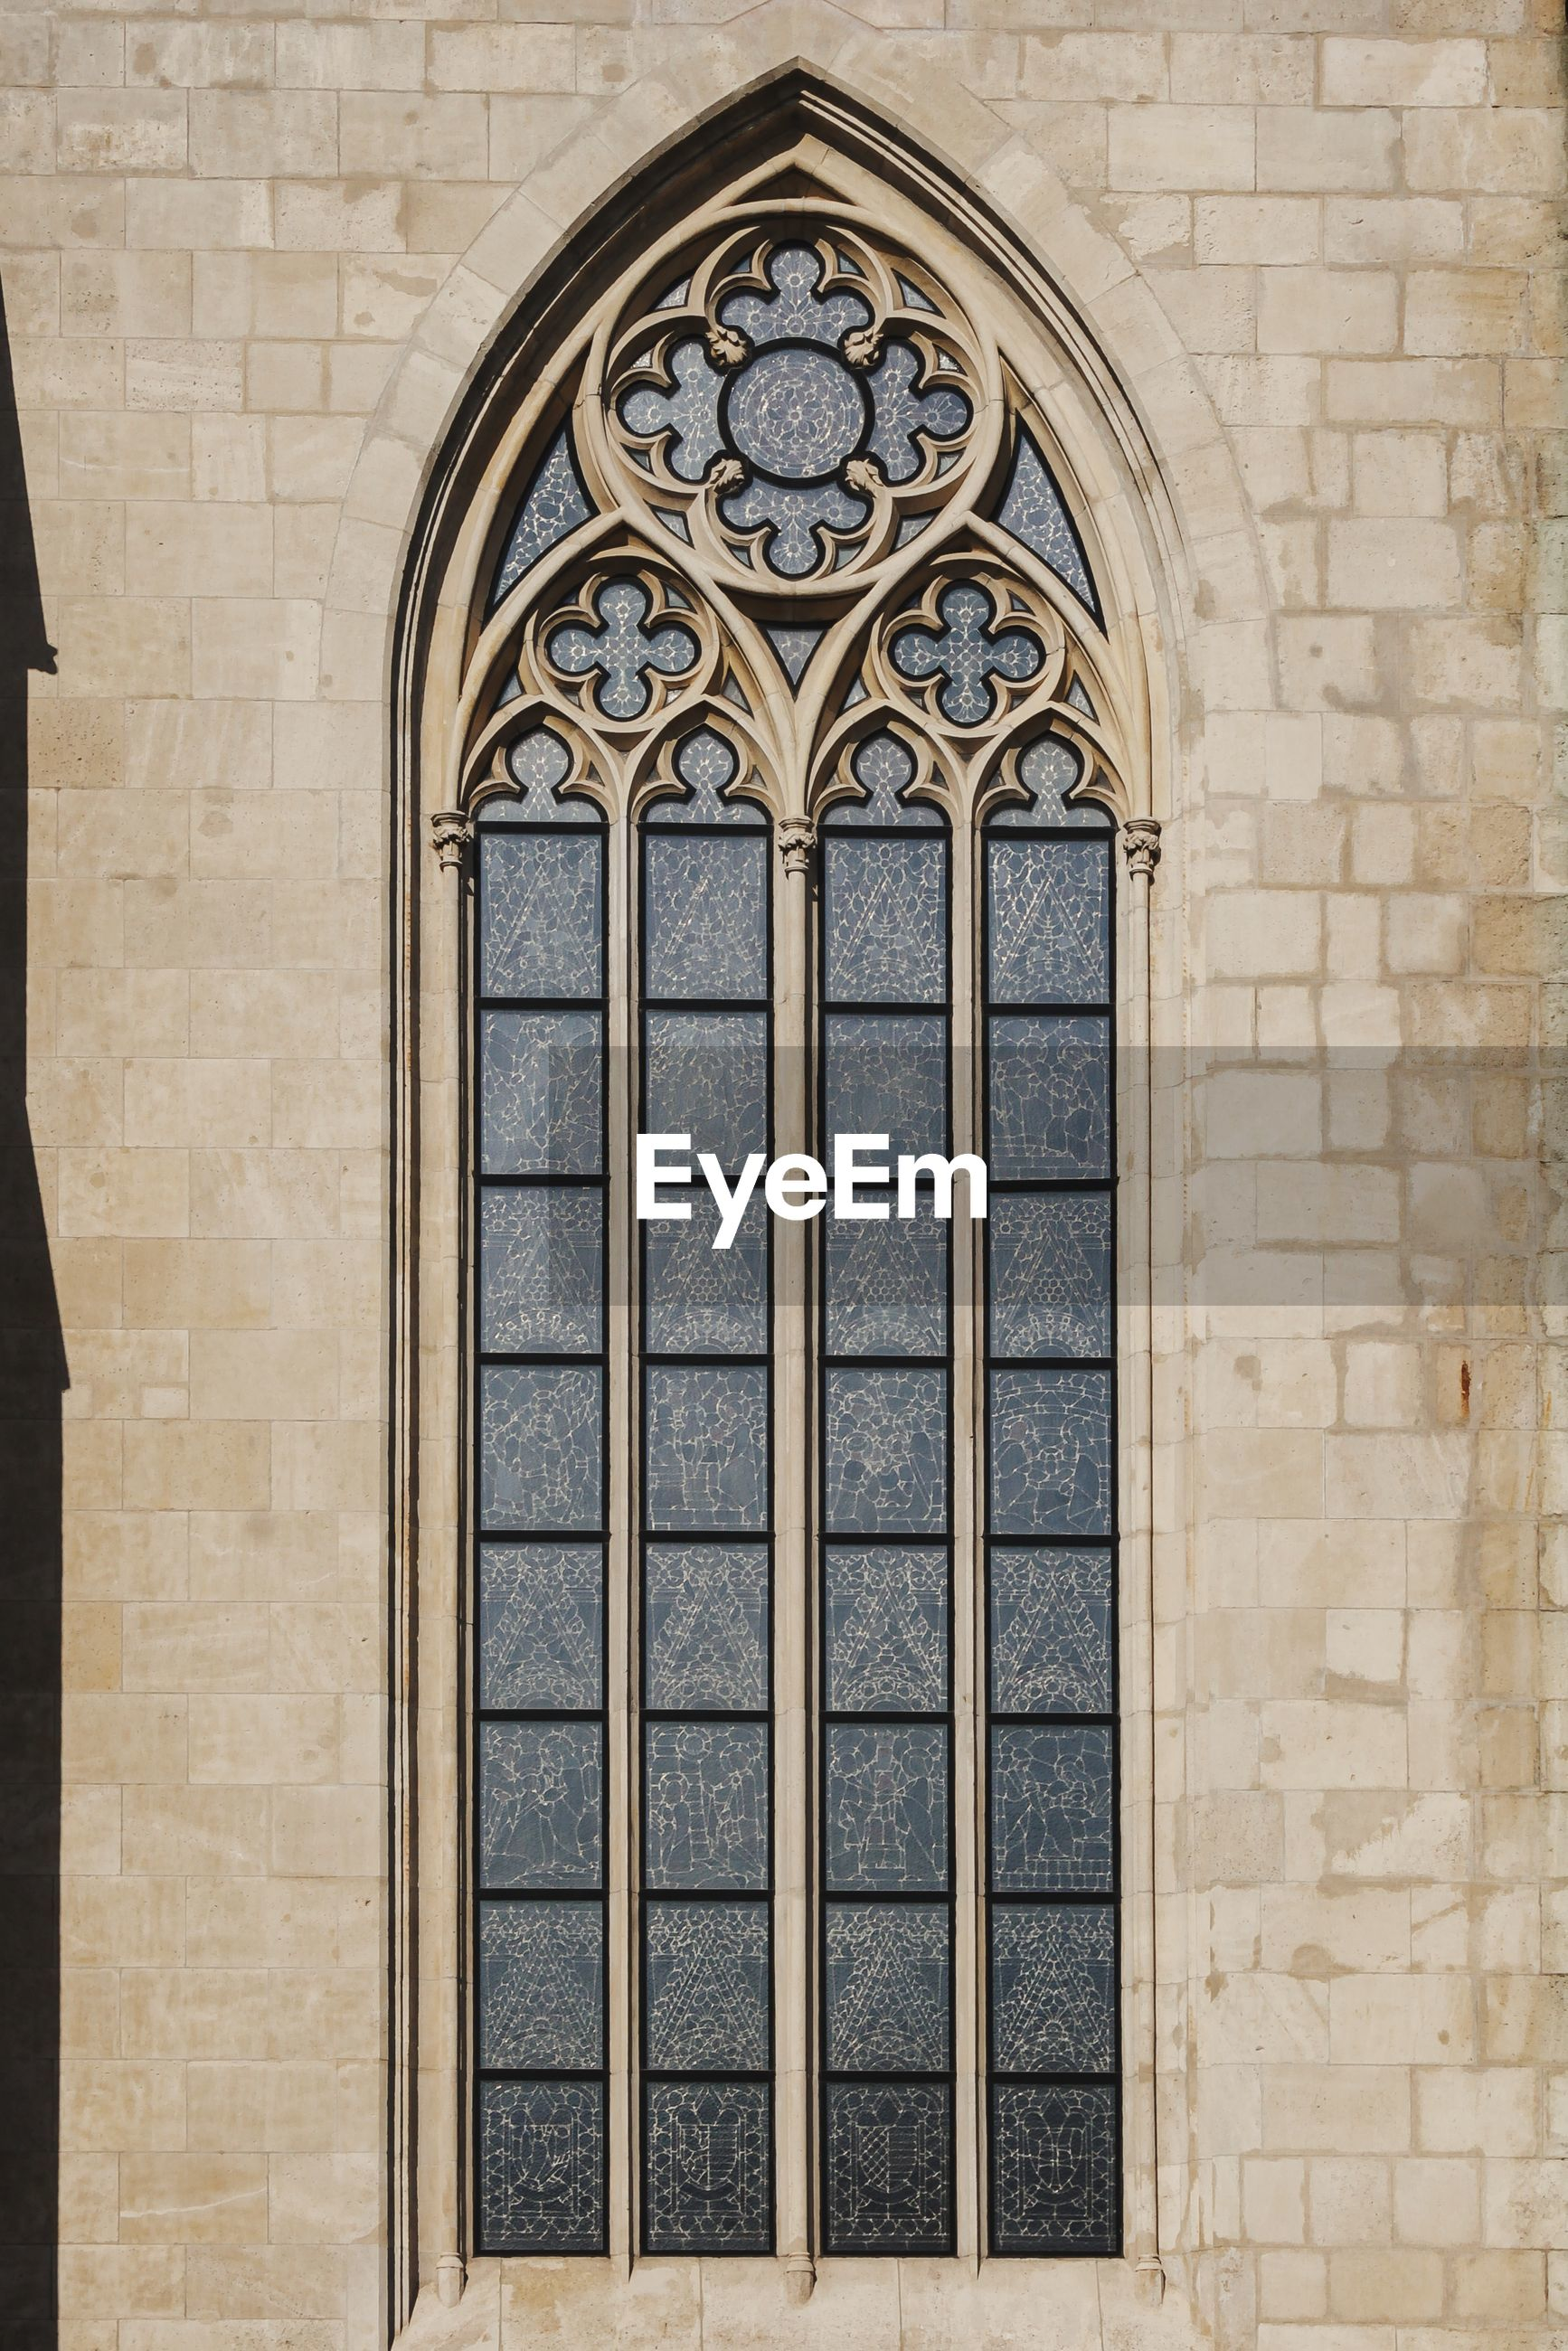 View of ornate window on wall of cathedral